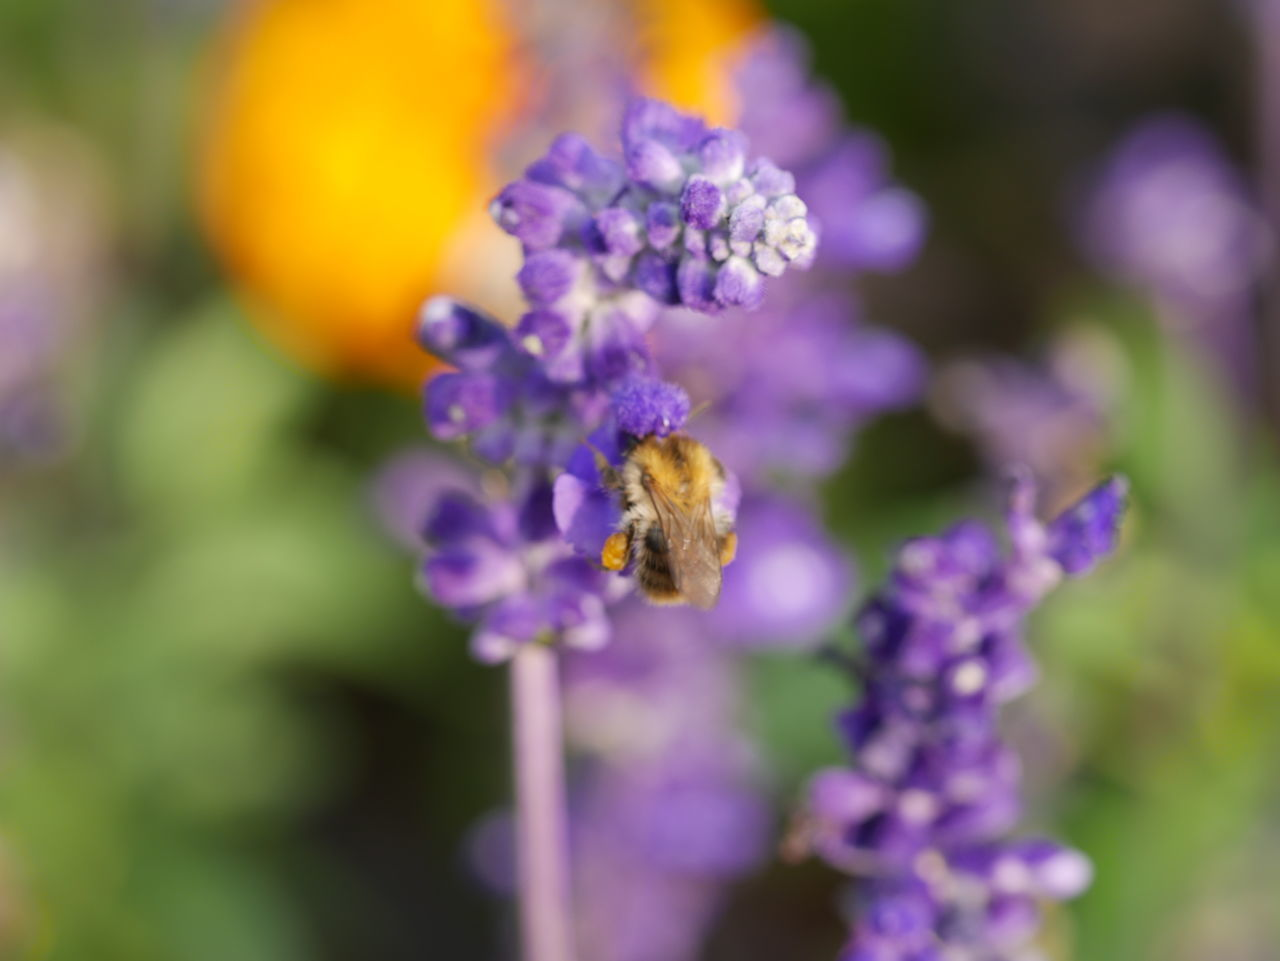 flower, purple, nature, one animal, beauty in nature, bee, animal themes, insect, fragility, petal, animals in the wild, growth, animal wildlife, lavender, no people, honey bee, plant, pollination, day, close-up, freshness, outdoors, buzzing, flower head